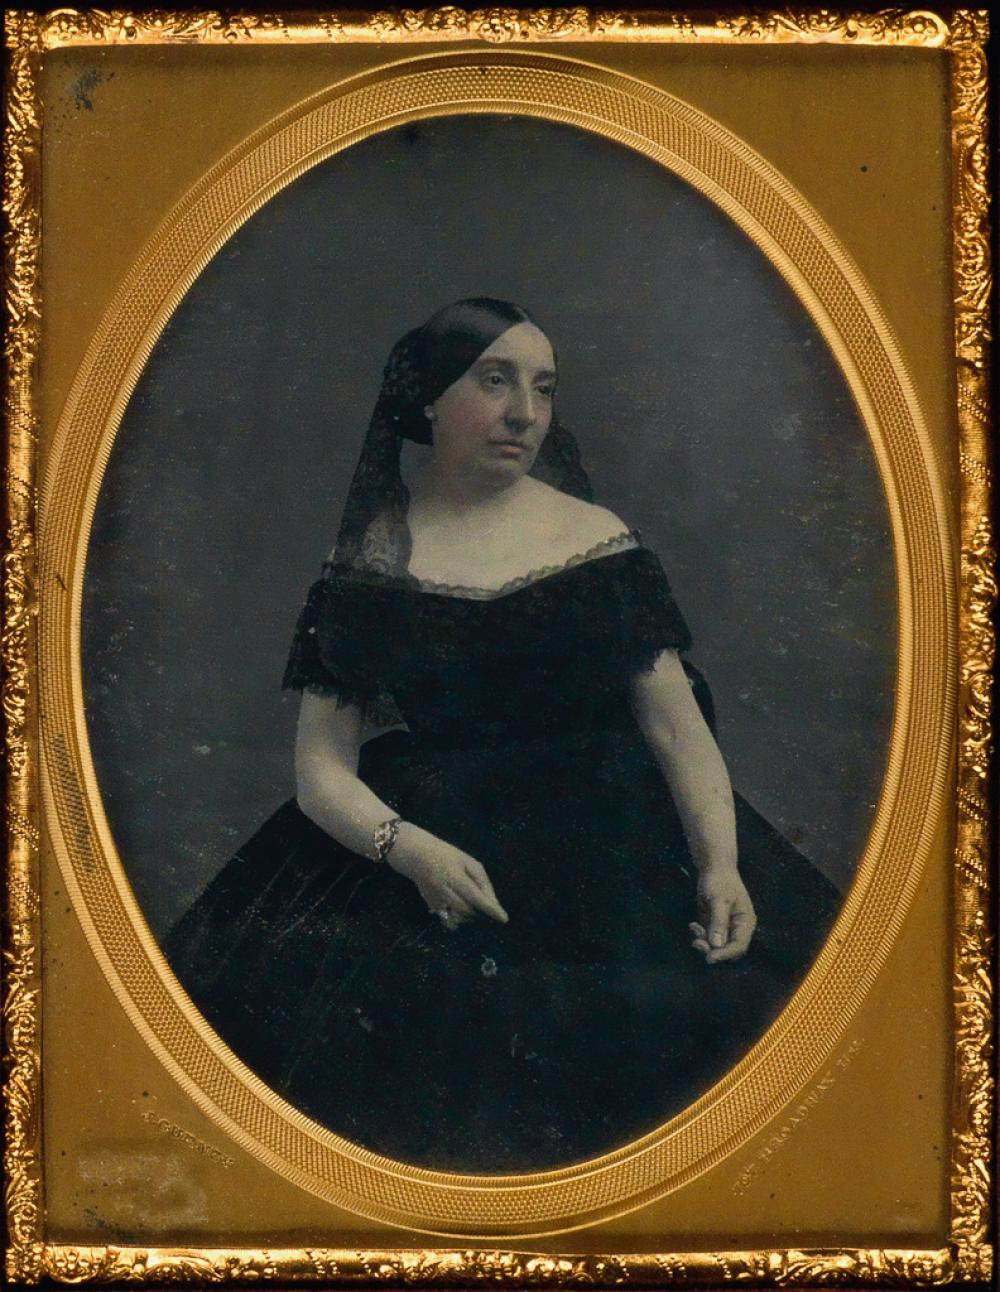 JEREMIAH GURNEY (1812-1895) A lightly-tinted half-plate daguerreotype portrait of a woman in a lace trimmed off-the-shoulder dress.